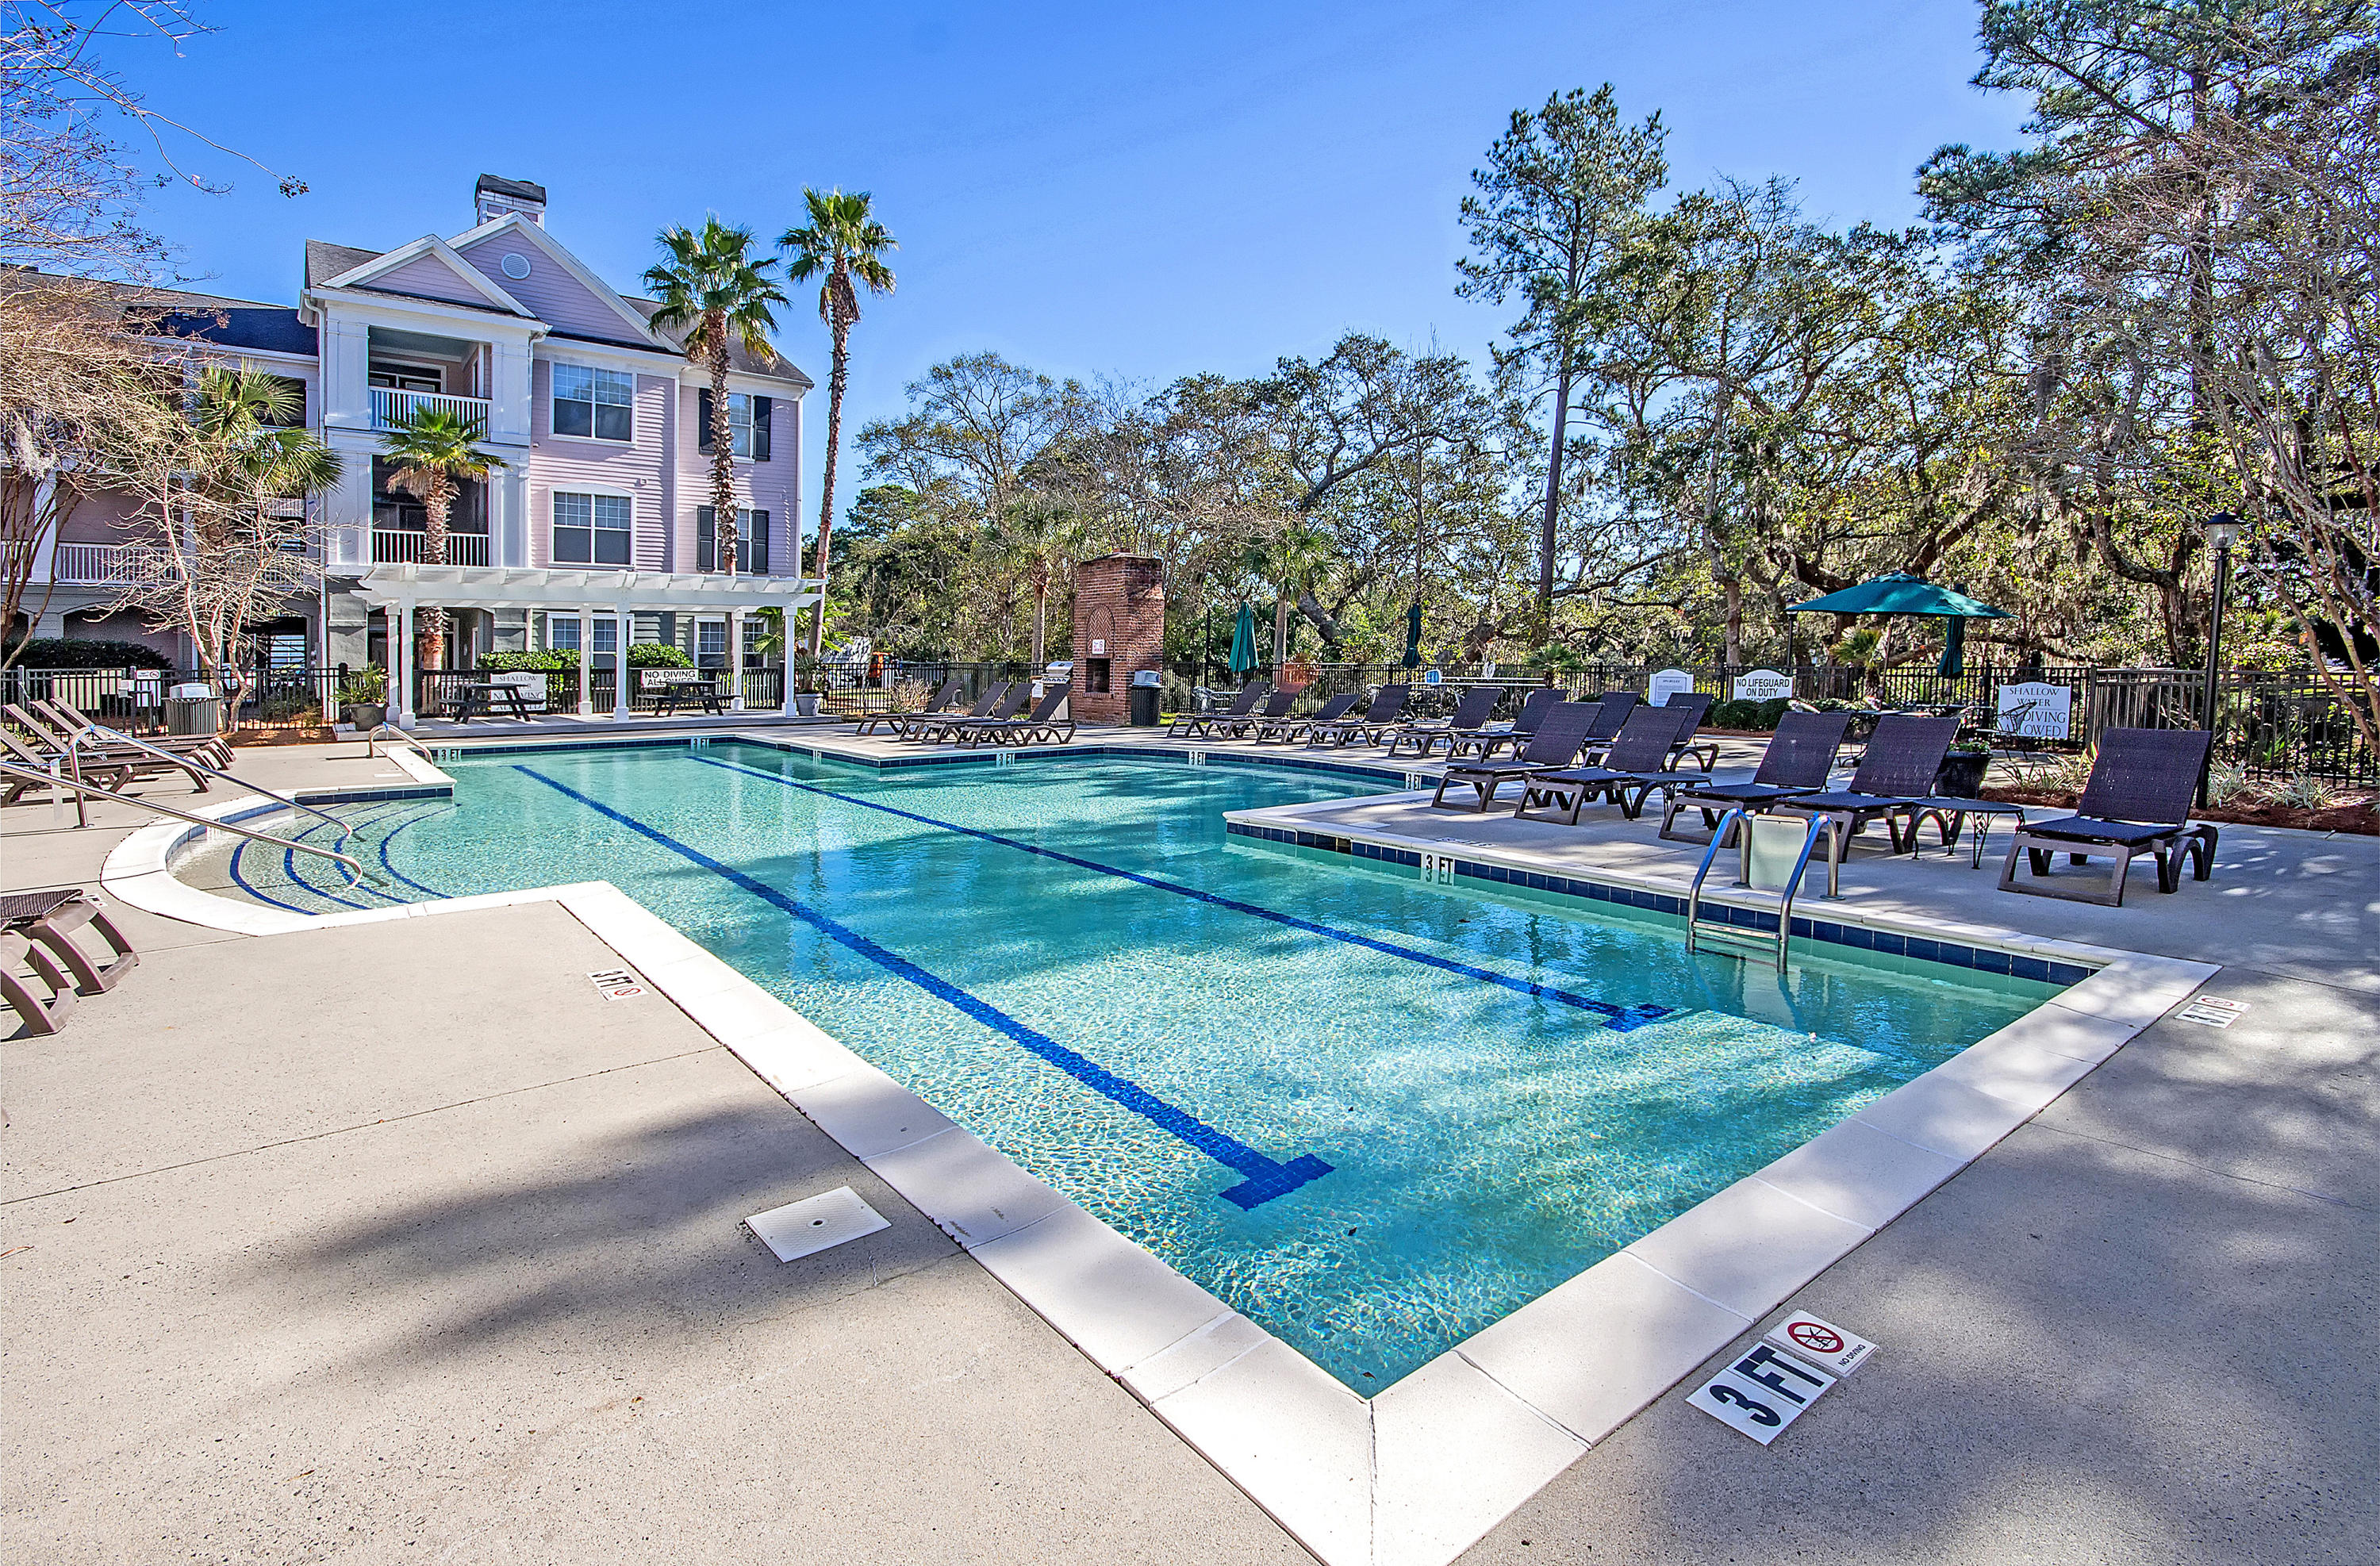 Daniel Landing Condos Homes For Sale - 130 River Landing, Daniel Island, SC - 4